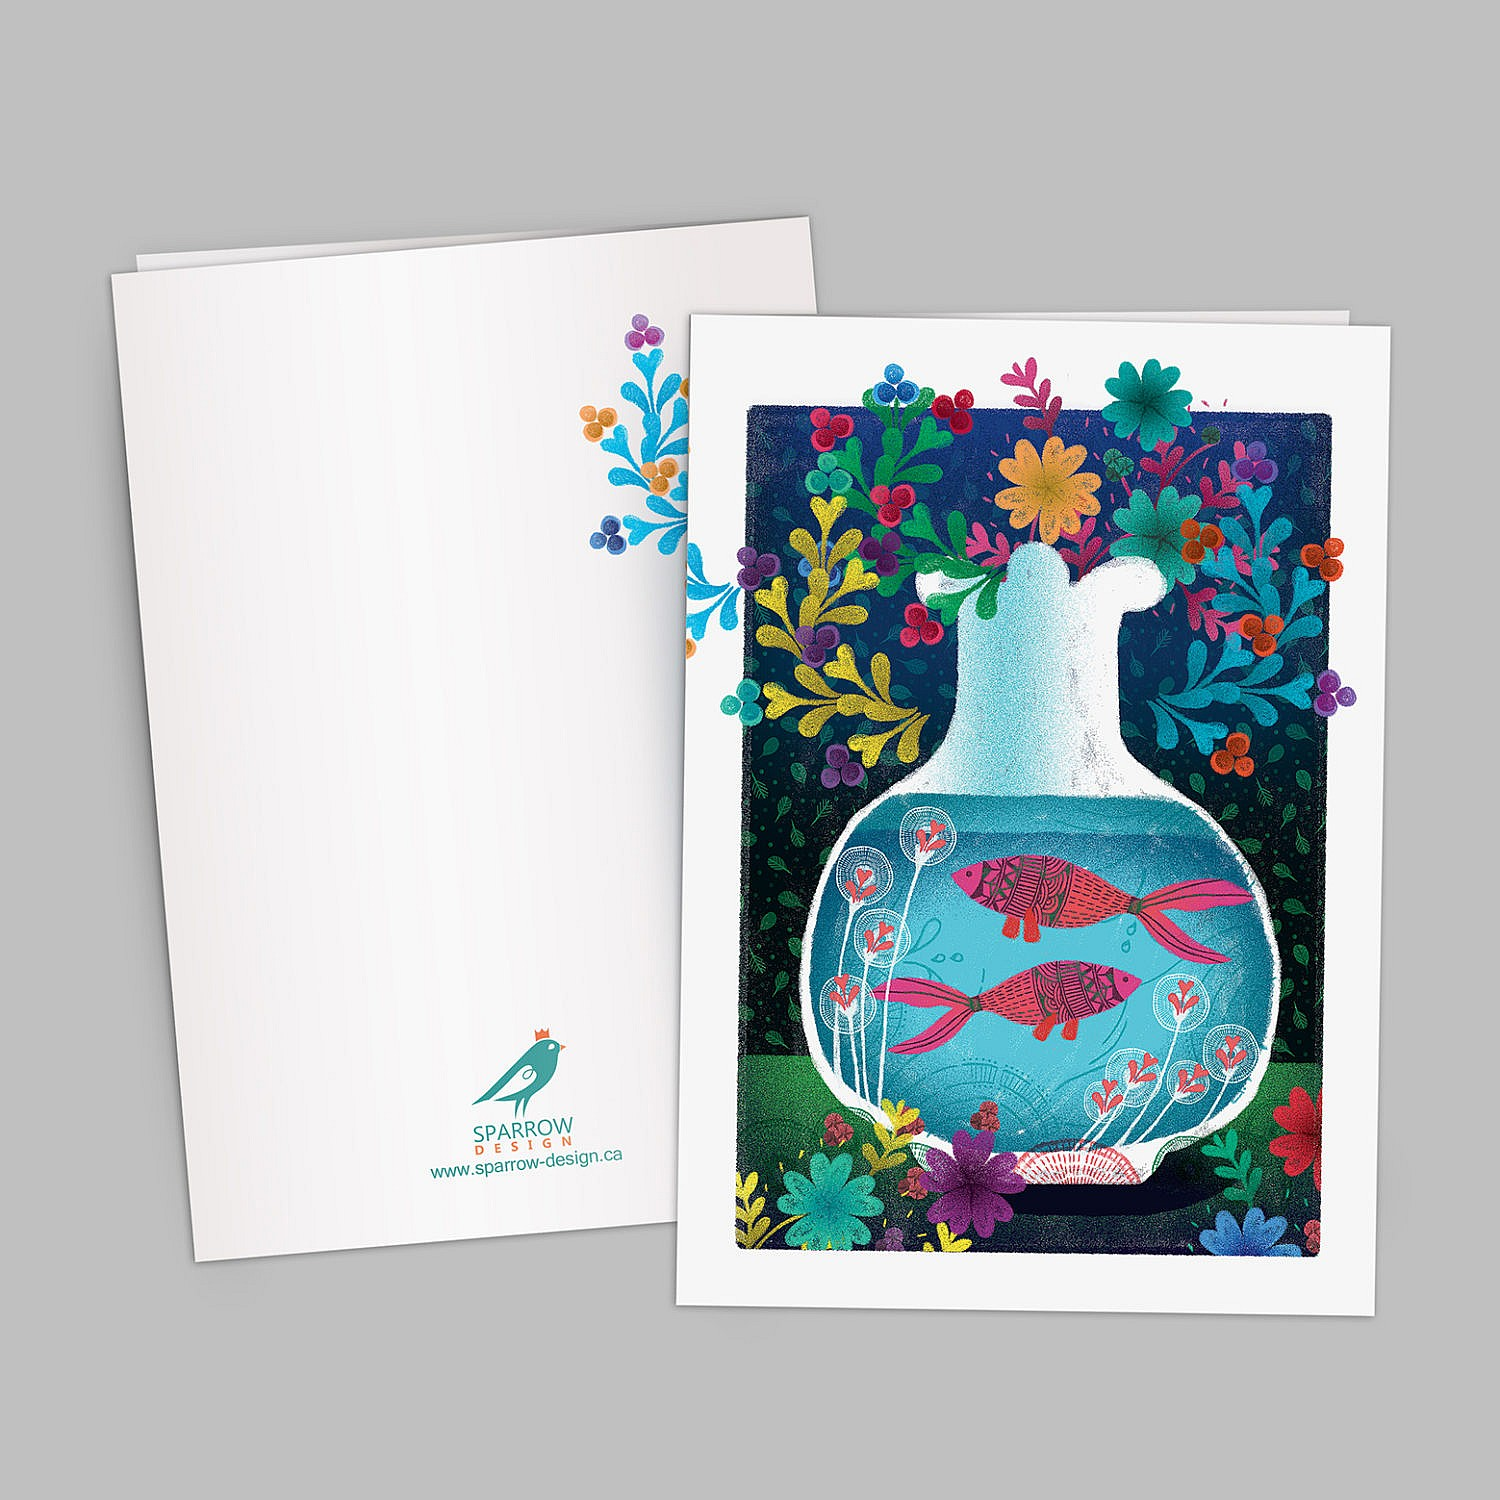 The image includes an illustrated greeting card which is designed to celebrate Spring. The image shows two goldfishes inside a water tank. Both fishes are decorated with floral patterns. In the background there are colorful flowers. The background is blue and green.